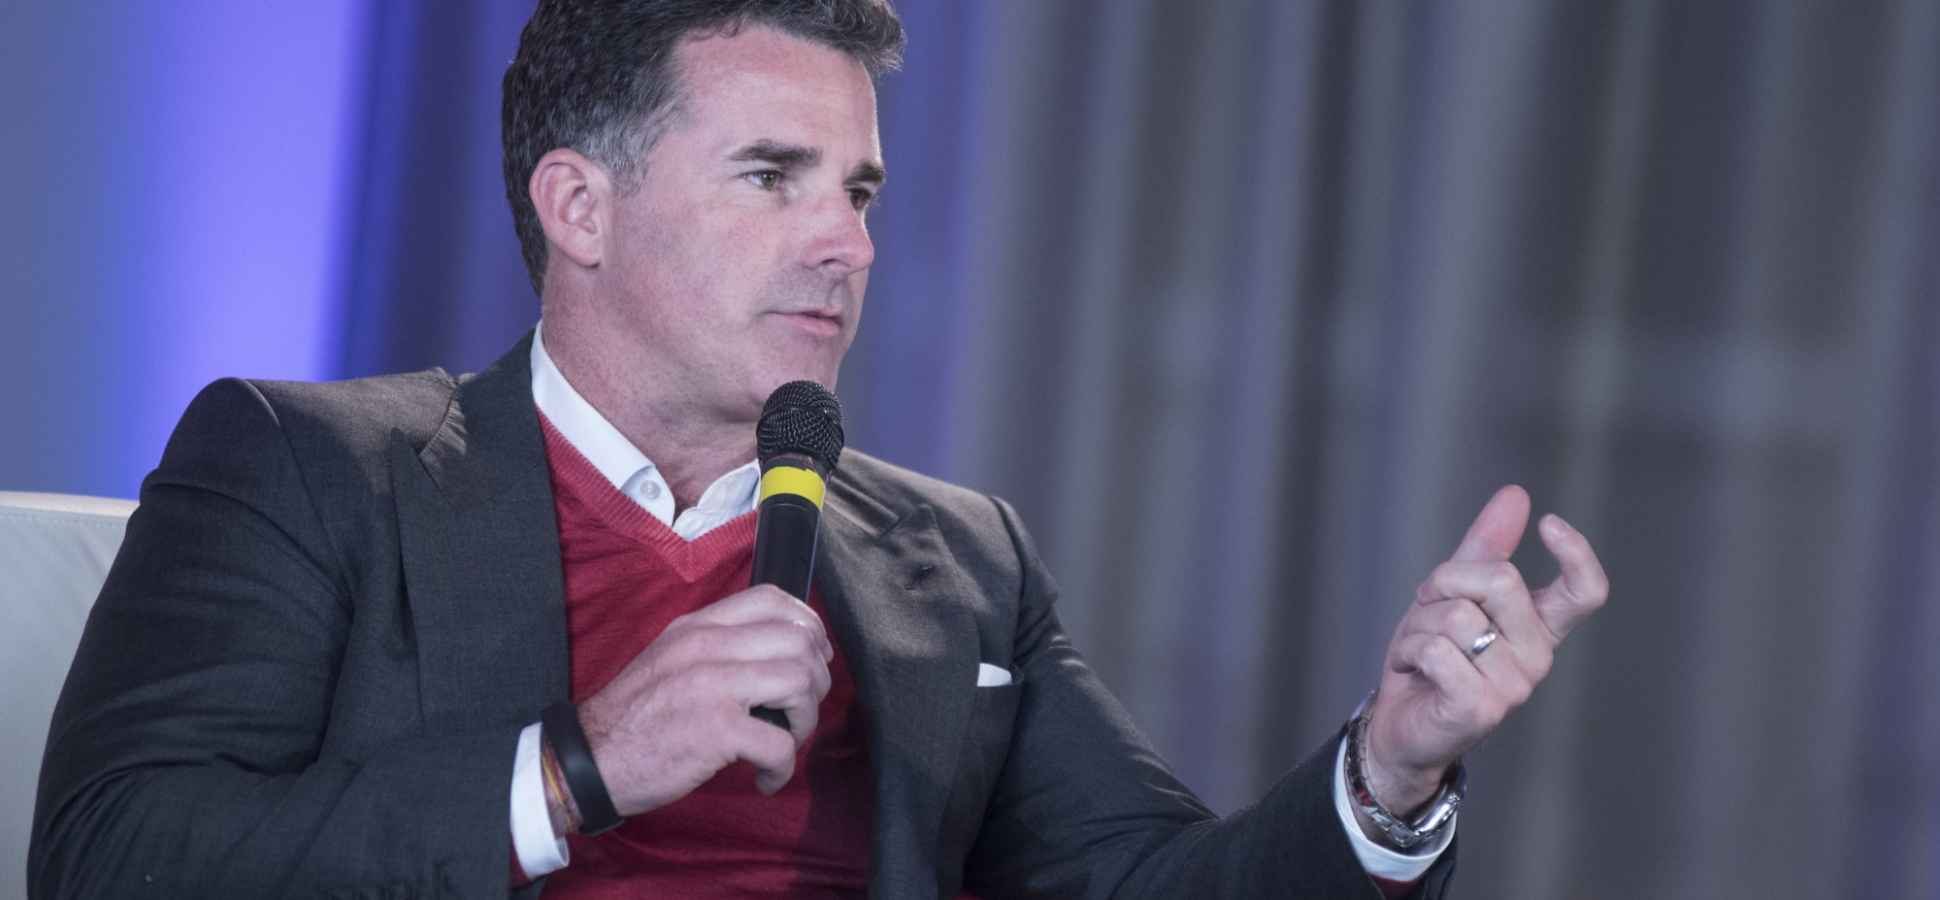 afce2bbc54 Under Armour's Kevin Plank to Graduates: Passion Is Not a Hashtag   Inc.com